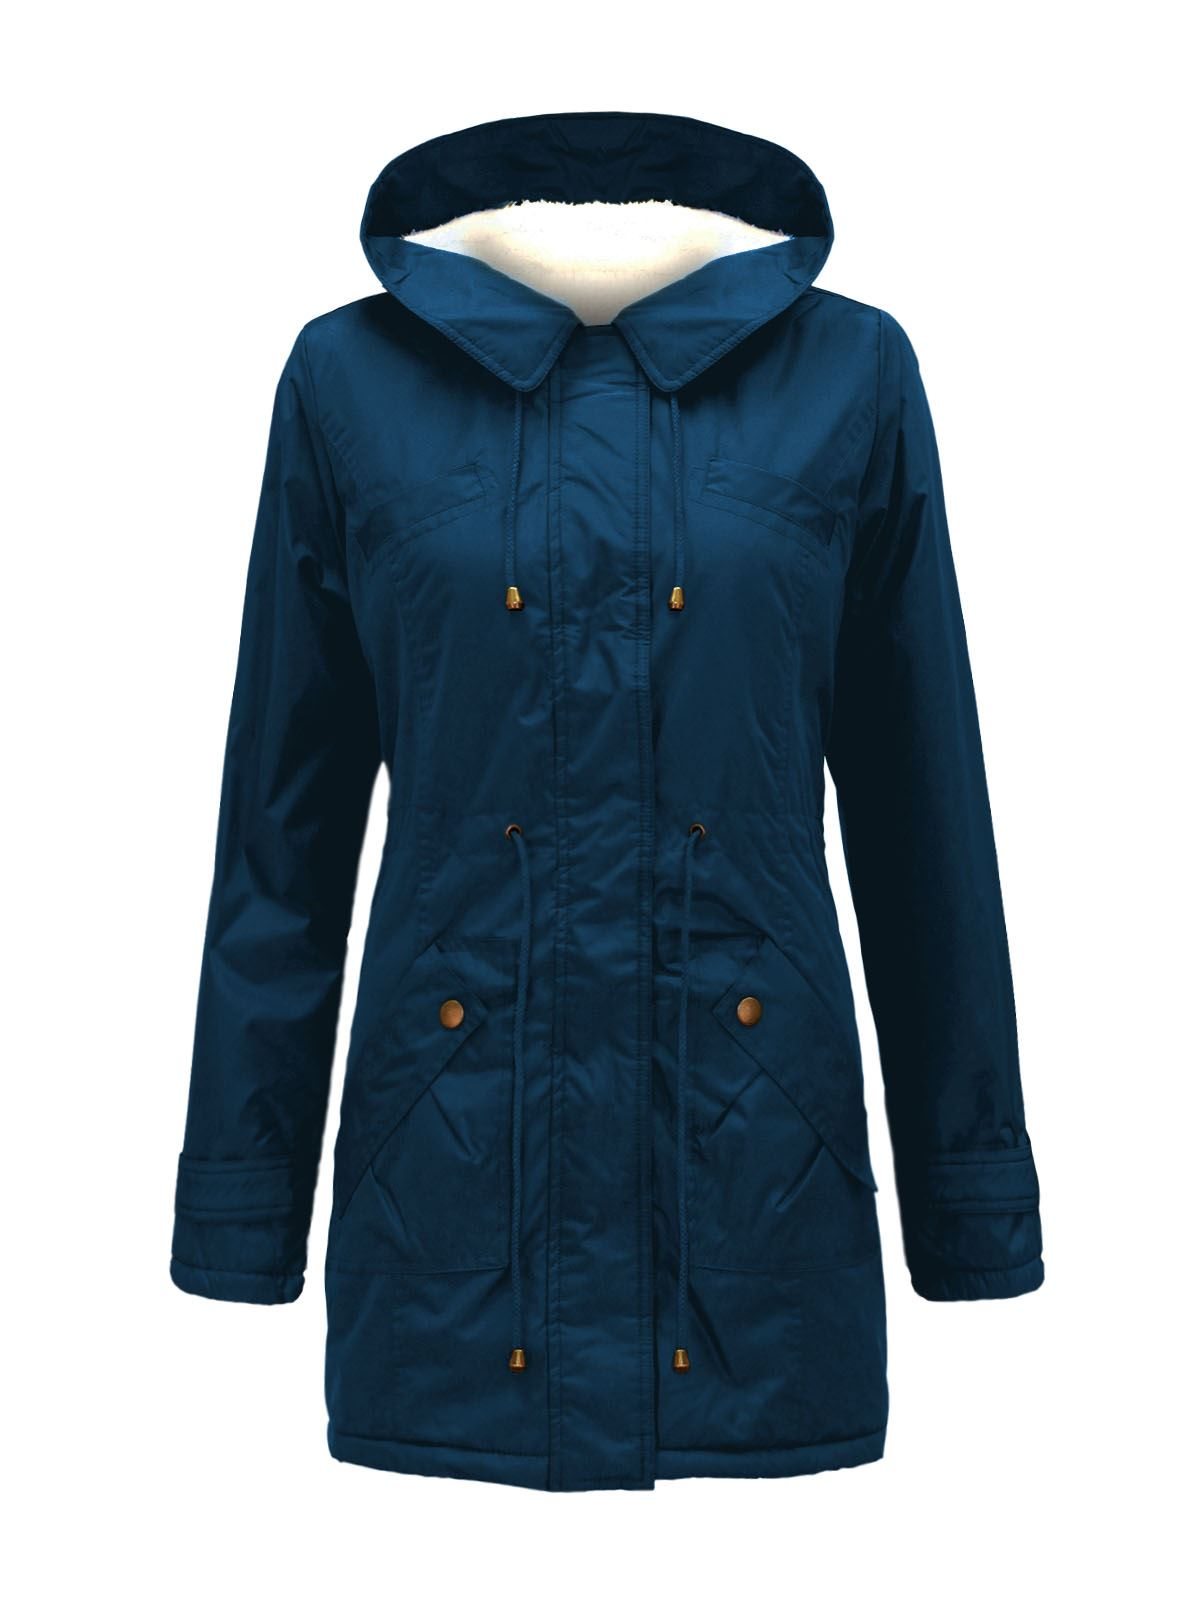 LADIES WOMENS FLEECE HOODED WARM LONG QUILTED WINTER TRENCH COAT JACKET 10-26